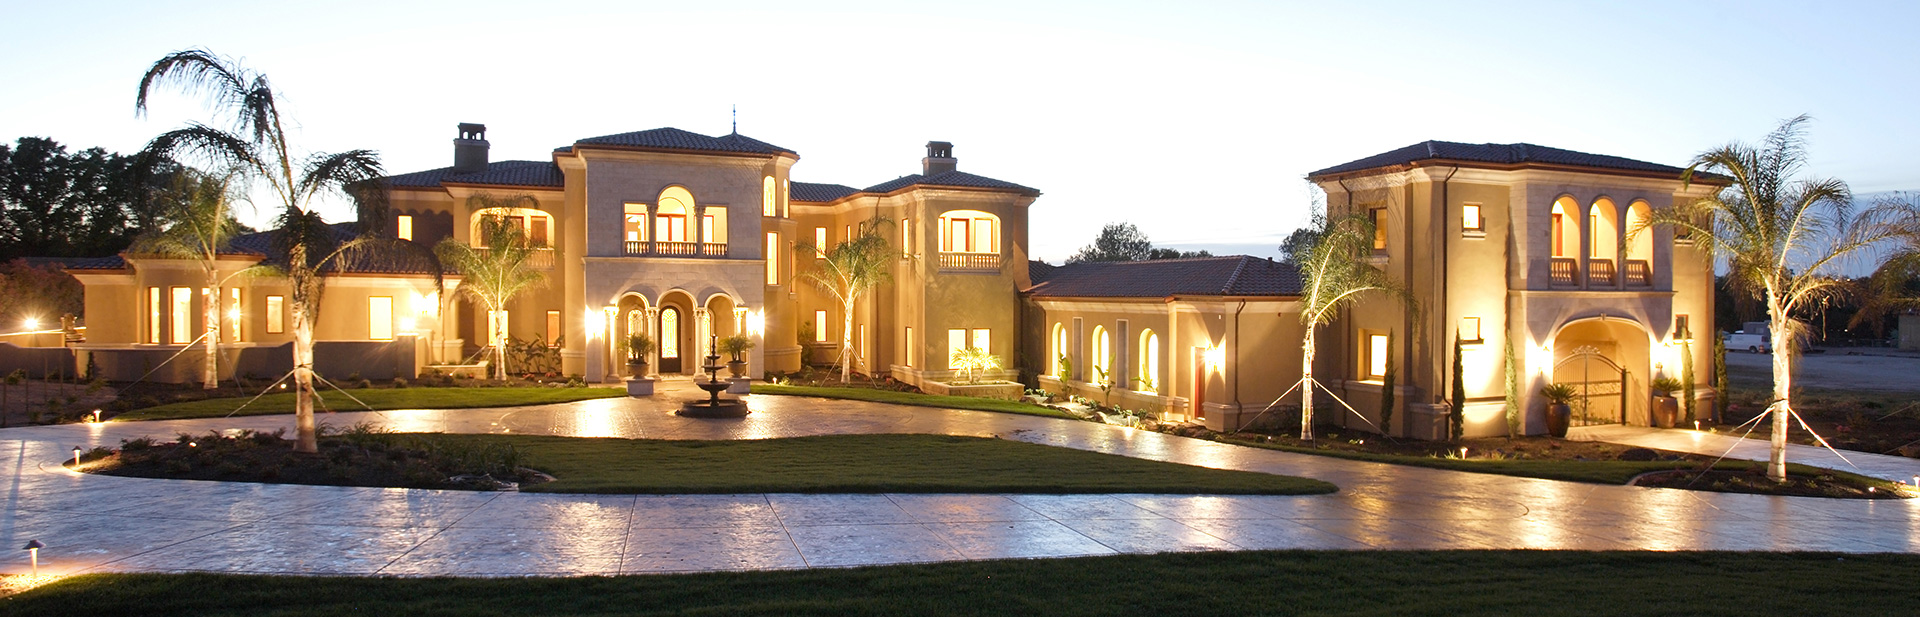 Million dollar homes in south florida boca raton palm for Million dollar luxury homes